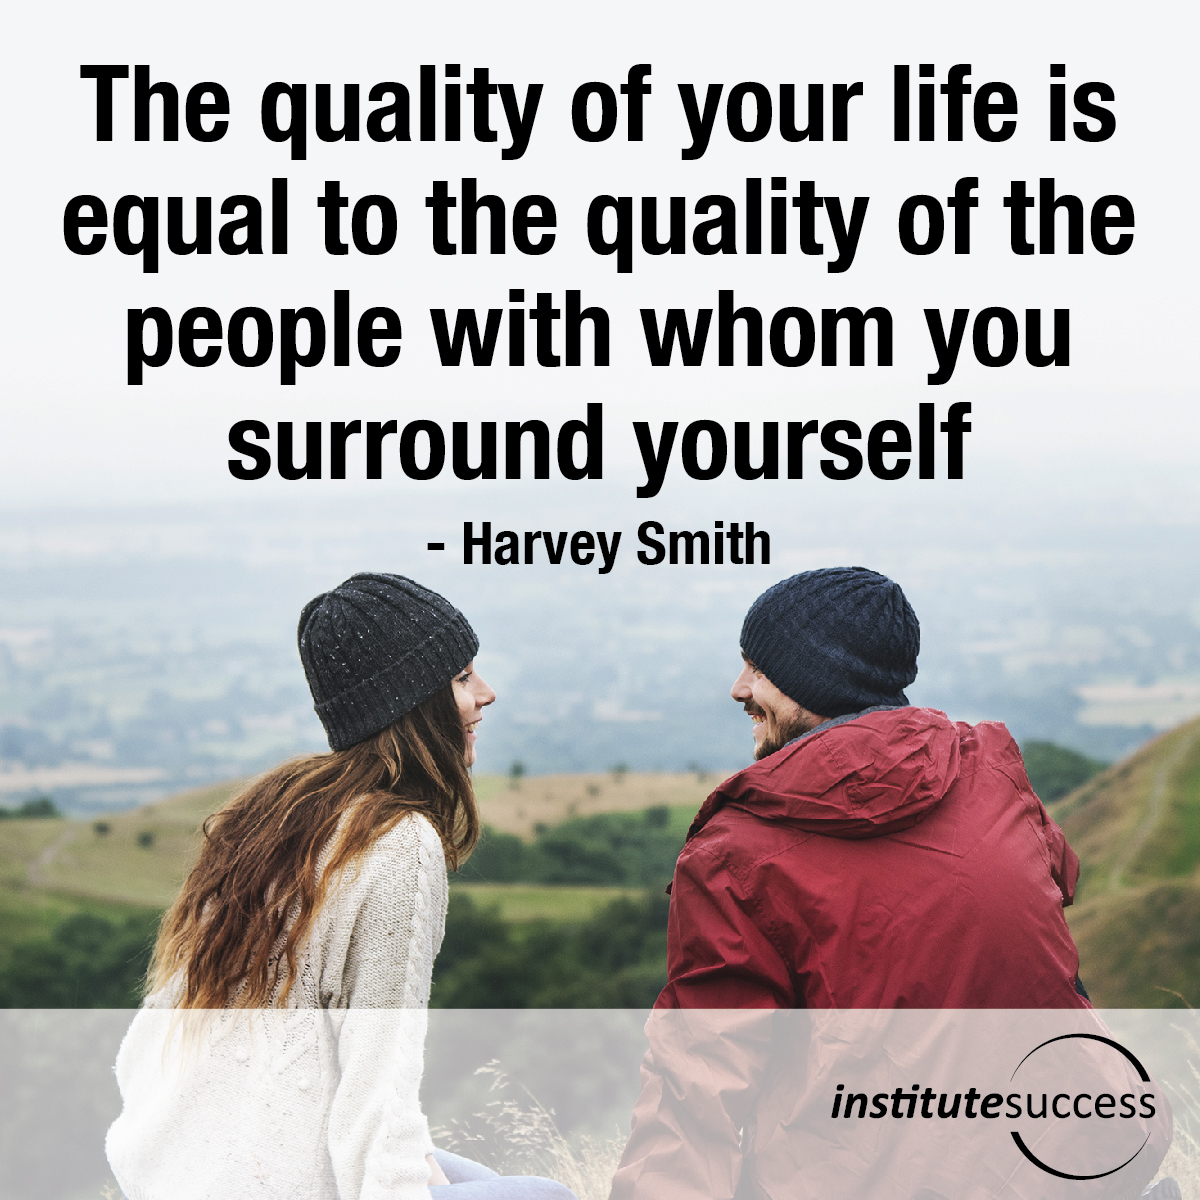 The quality of your life is equal to the quality of the people with whom you surround yourself – Harvey Smith